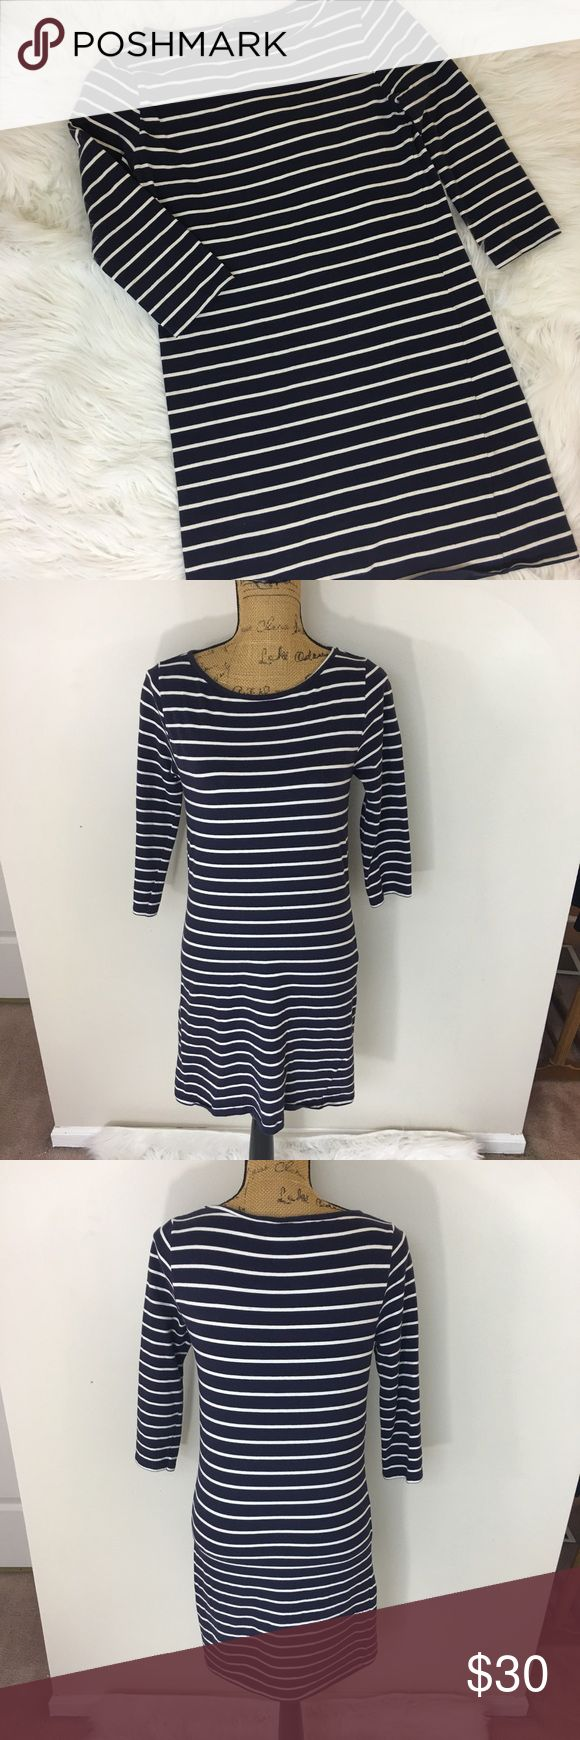 ✨TOPSHOP MATERNITY STRIPED DRESS✨ Topshop navy blue and white MATERNITY dress. Size 8. 3/4 length sleeves. 95% cotton 5% spandex. Excellent condition Topshop MATERNITY Dresses